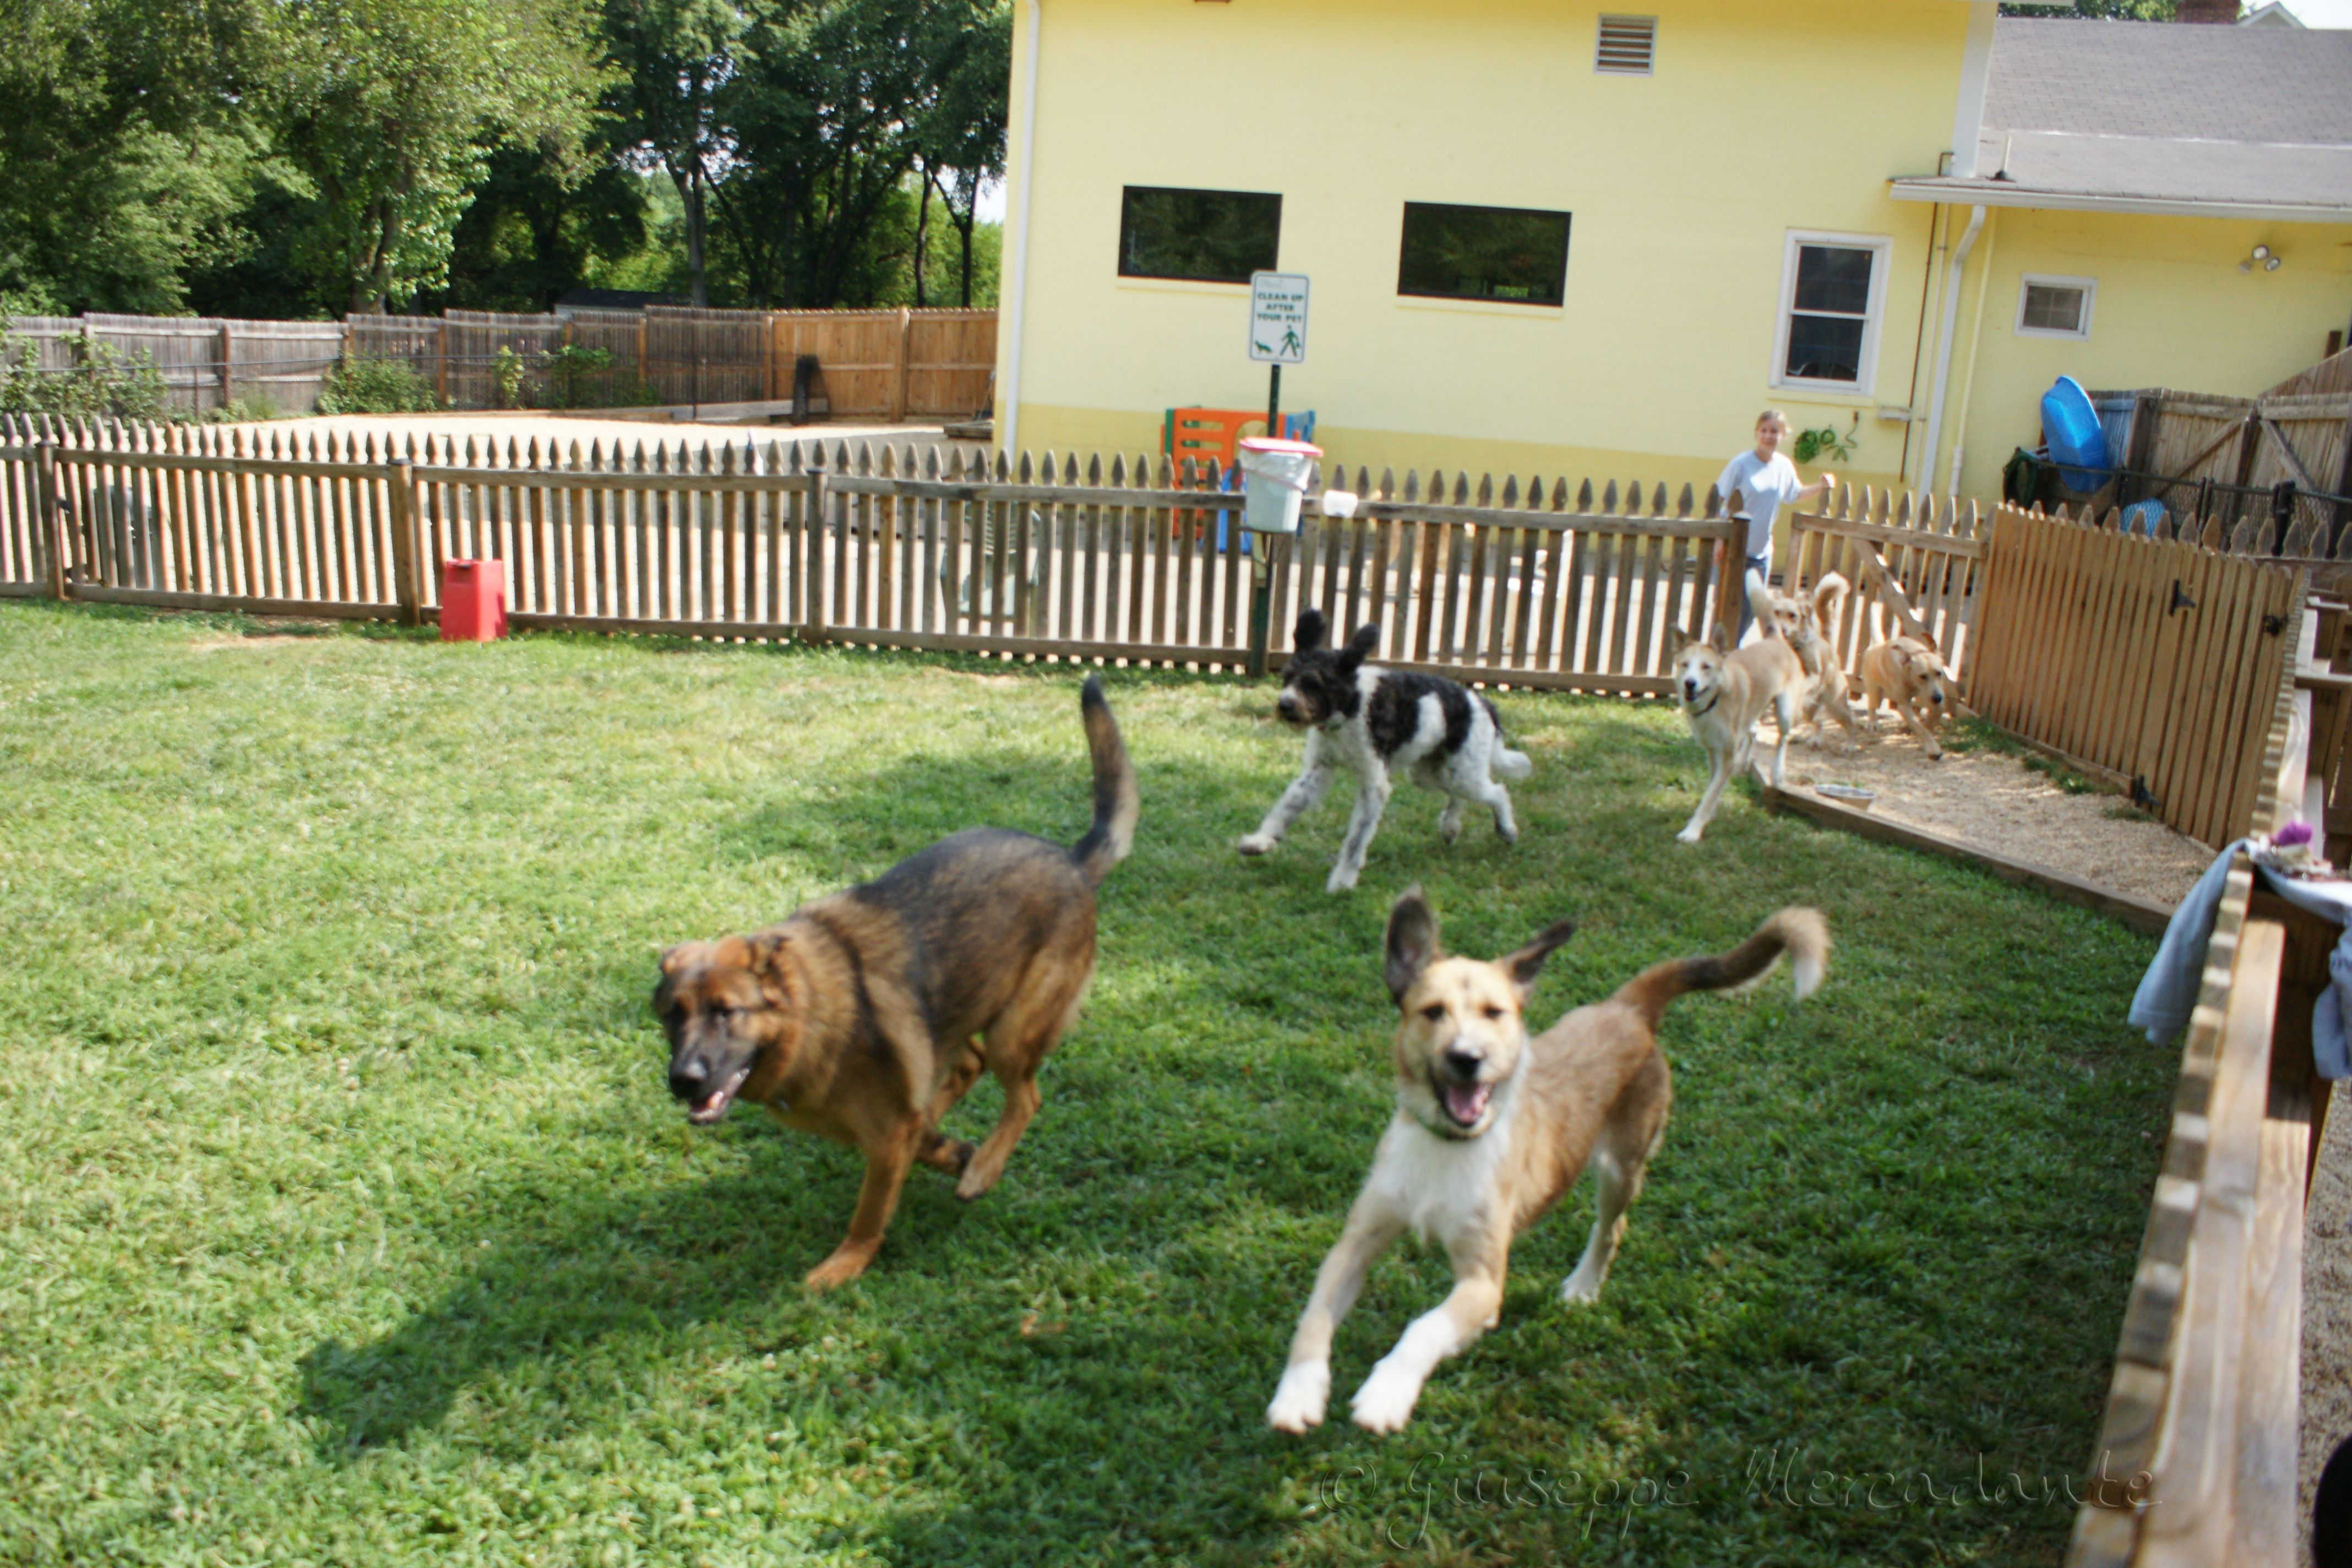 Dog Boarding And Day Care Services Salt Lake City Dog Daycare Dog Day Care Center Dog Boarding